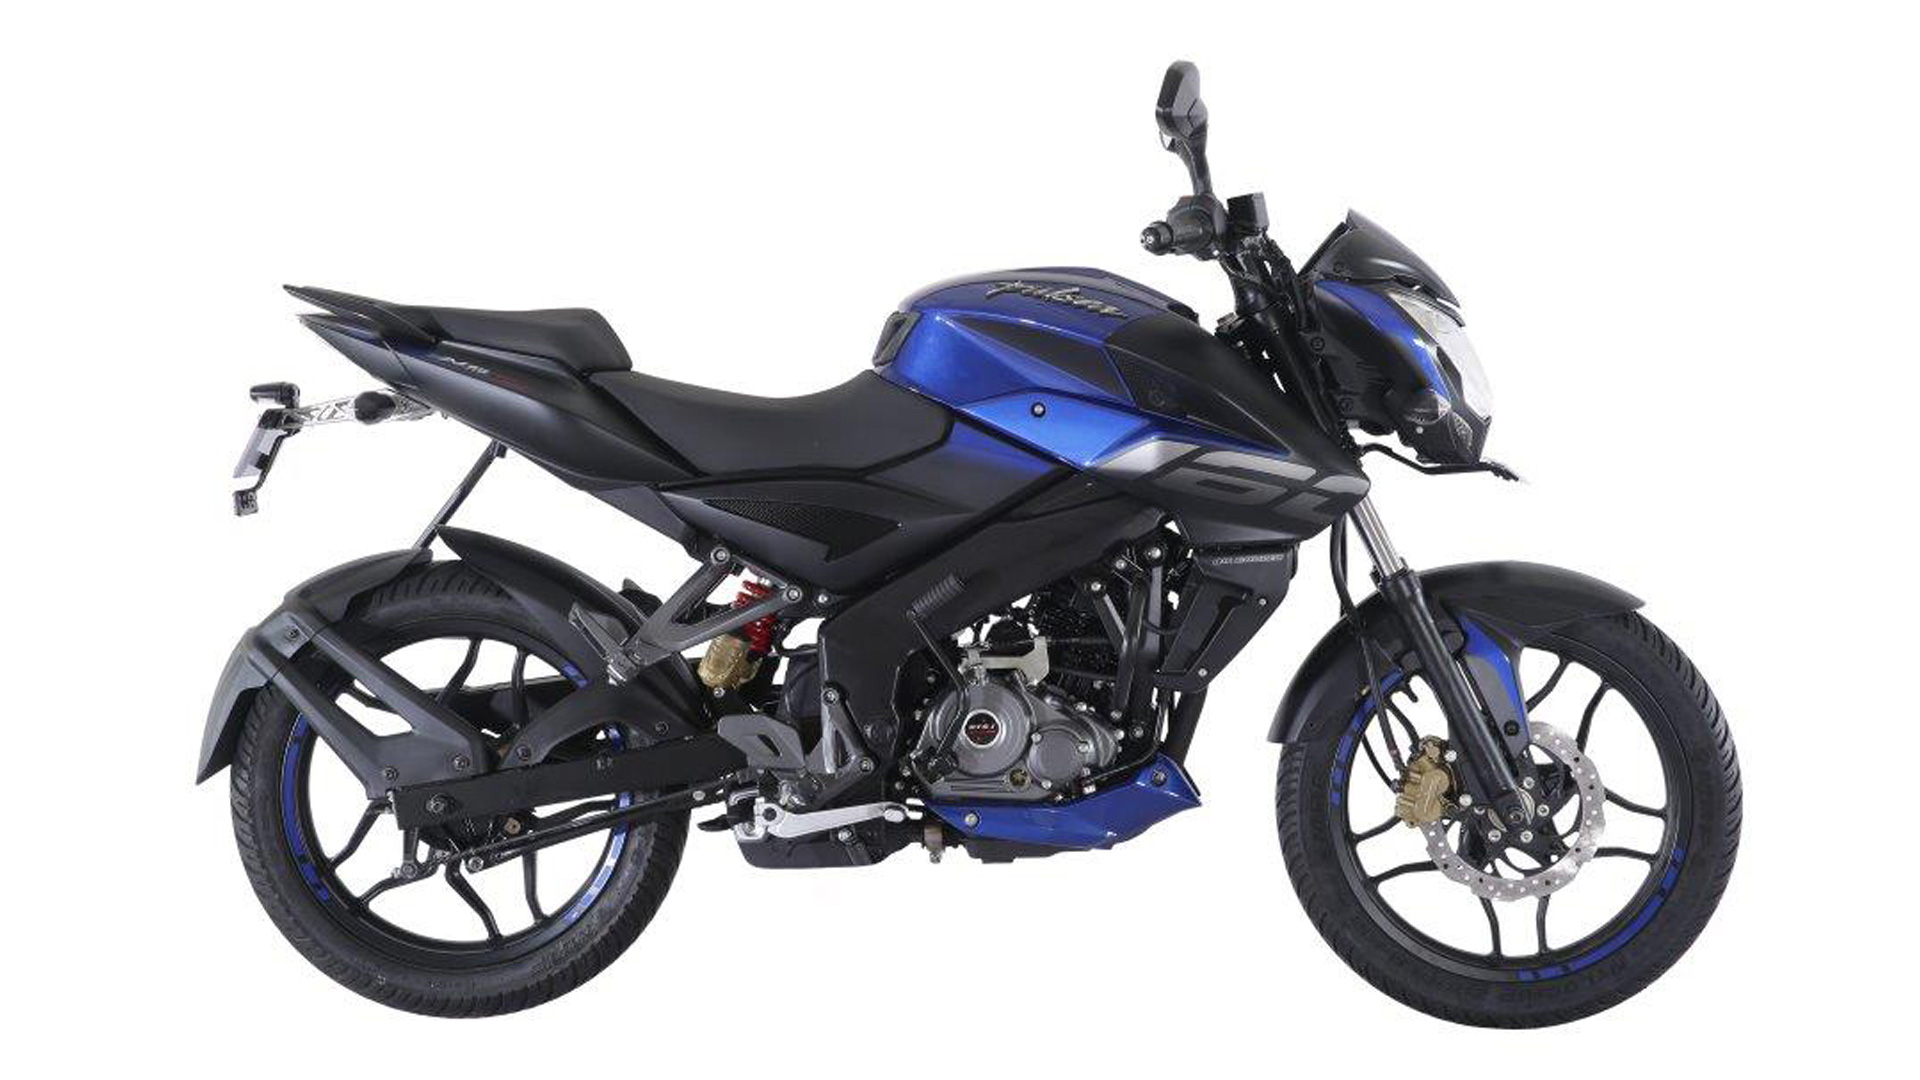 Bajaj Pulsar Ns160 2017 Price Mileage Reviews